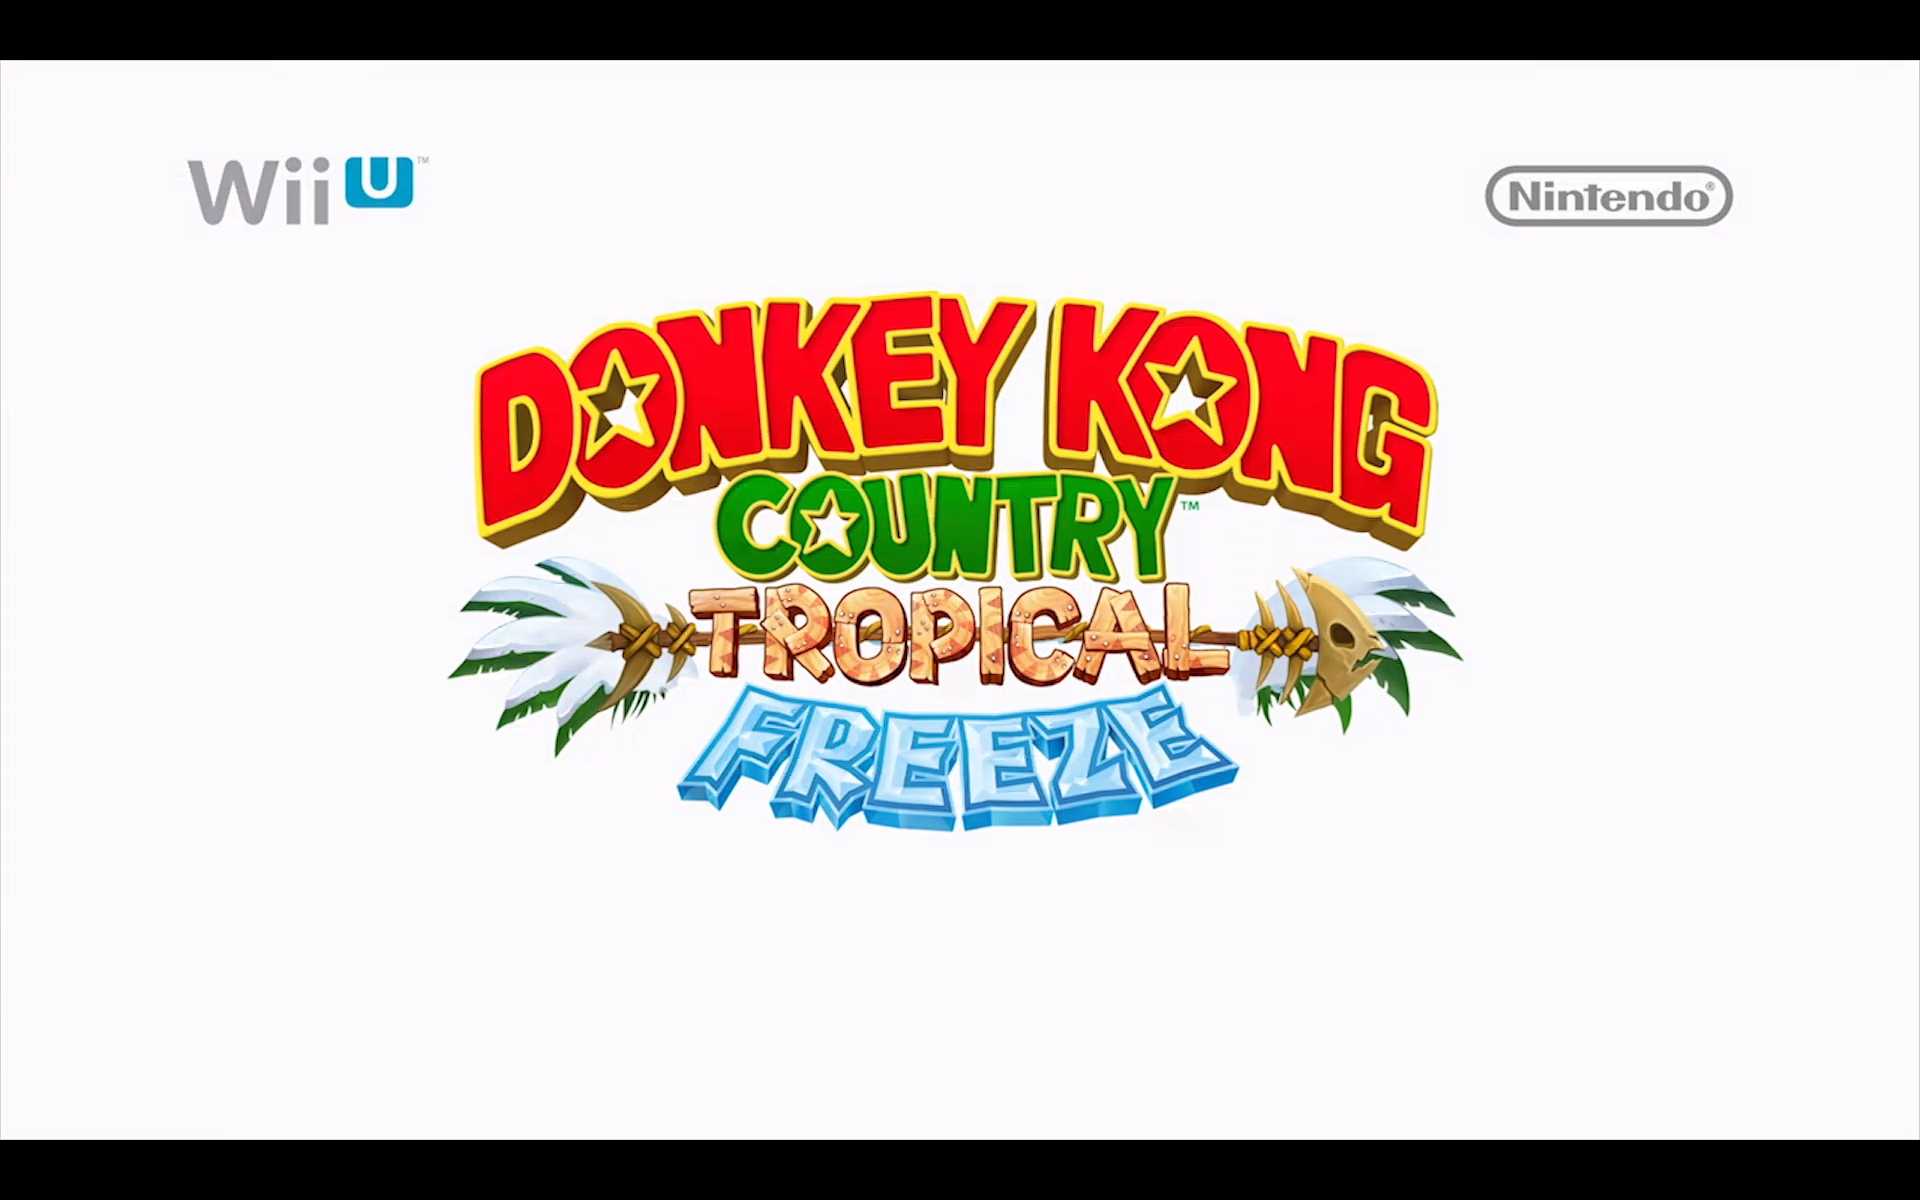 Donkey Kong Country: Tropical Freeze title